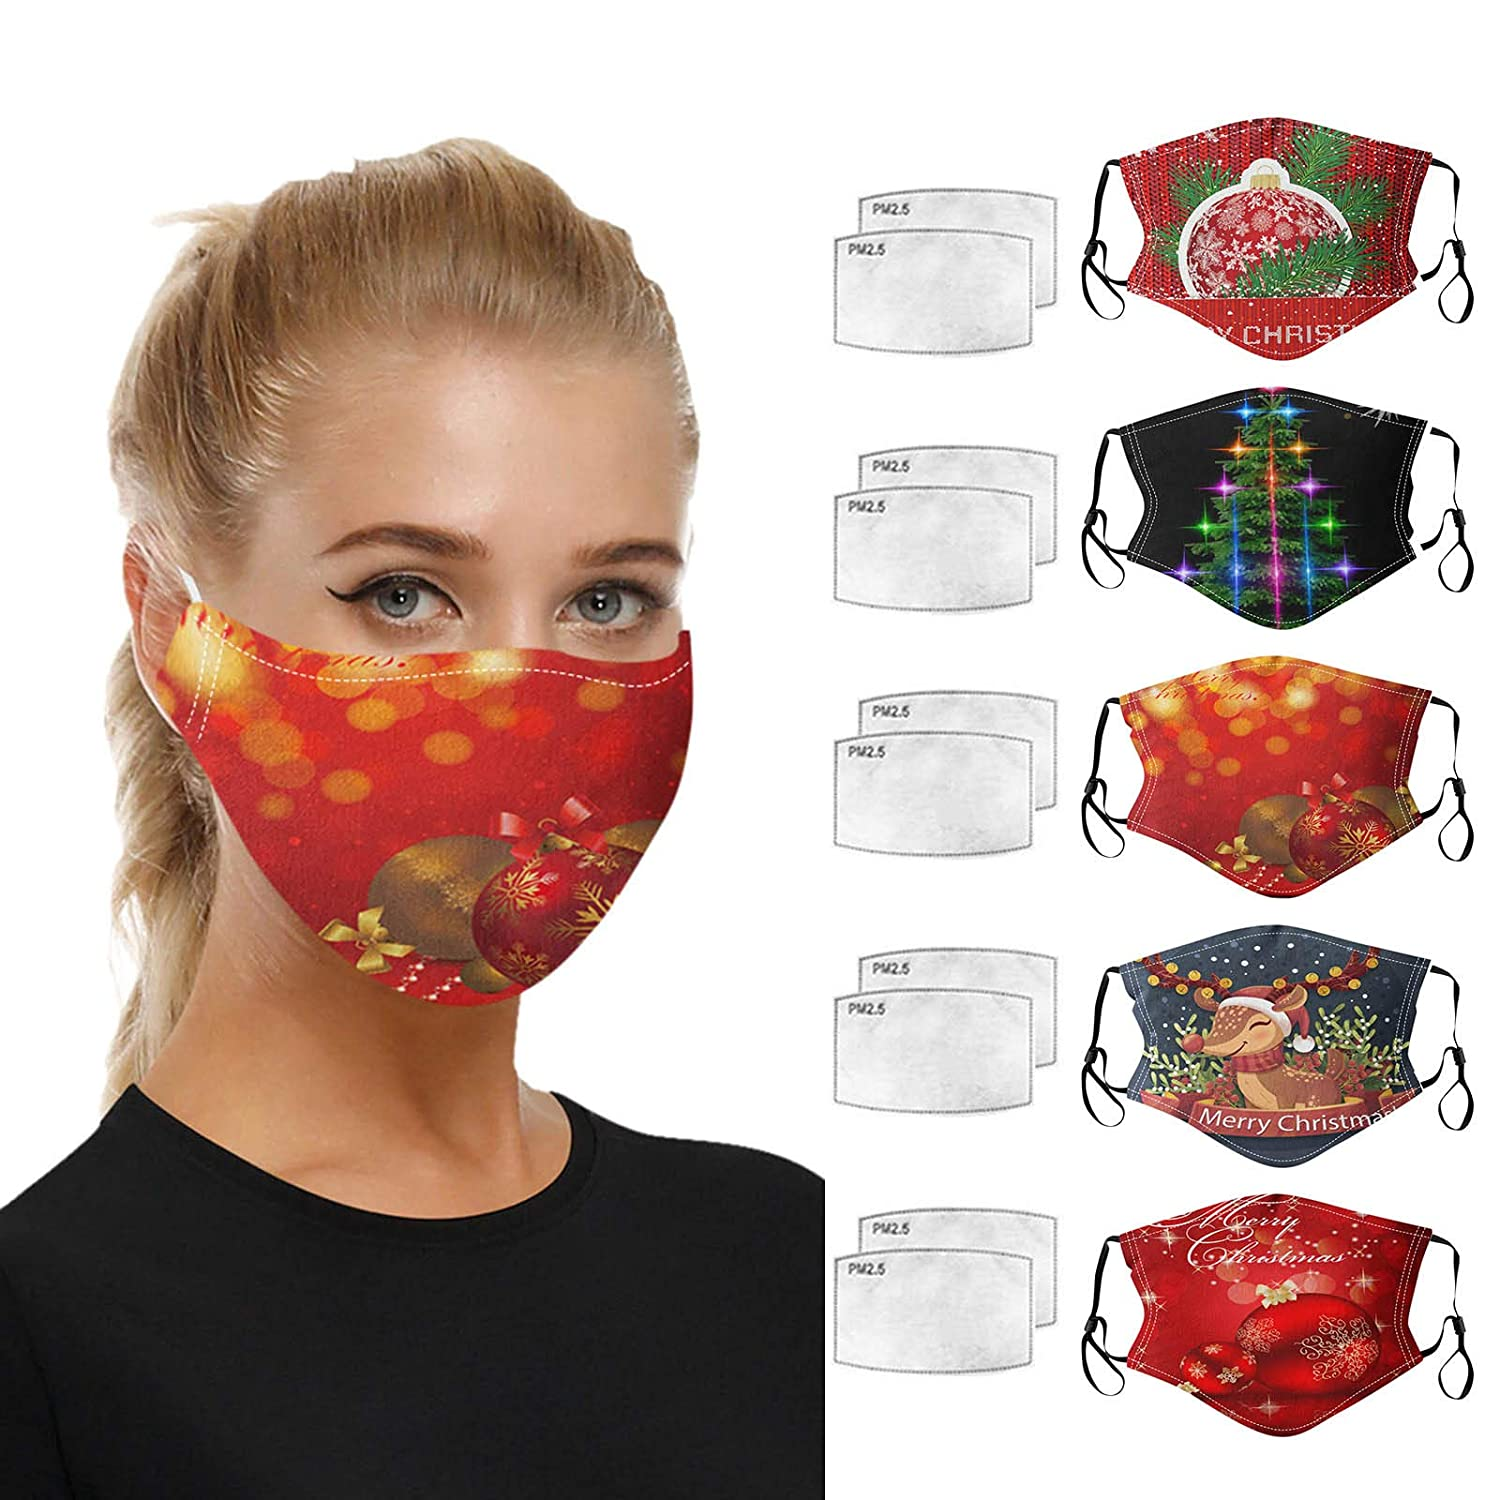 5Pcs Christmas Face_Mask With Filters Reusable Washable Cotton Cloth Bandanas, Adjustable Breathable Anti Dust Mouth Protective Santa Tree Snowman Printed Festival Decoration for Adults Unisex